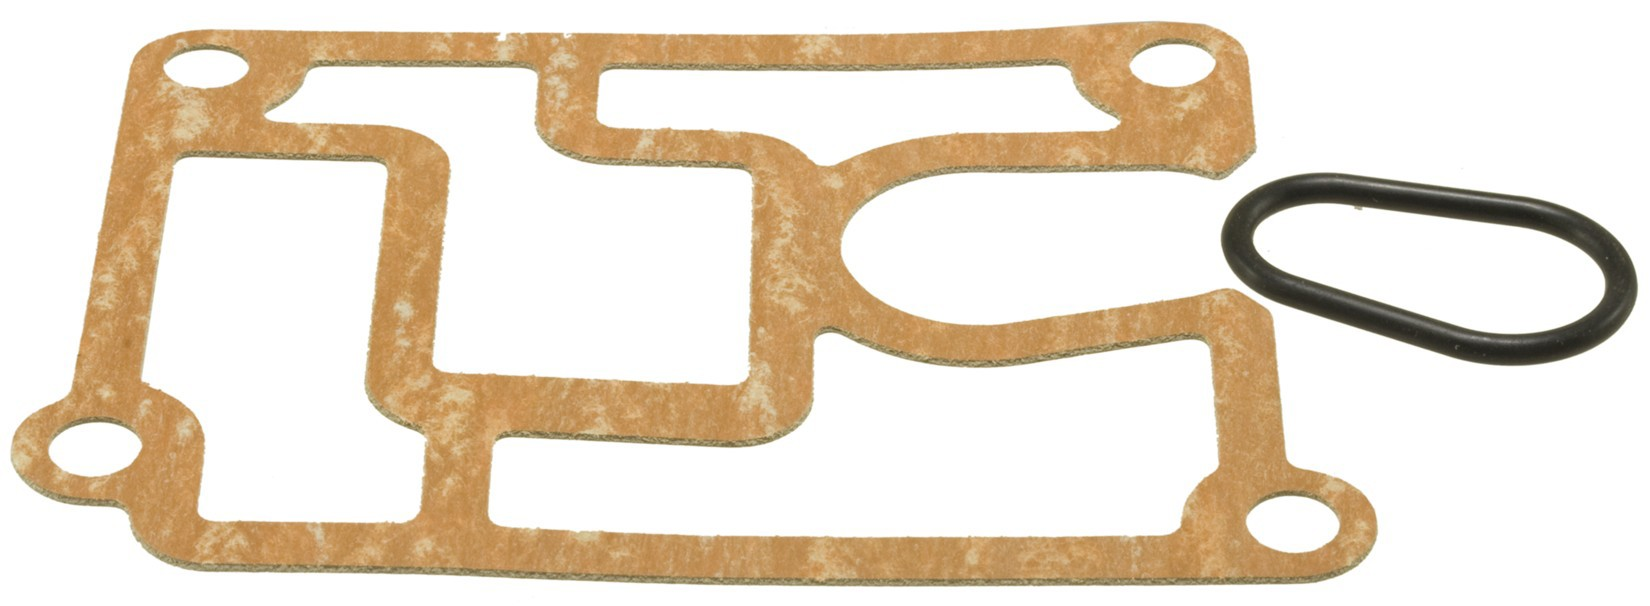 AIRTEX ENG. MGMT. SYSTEMS - Fuel Injection Idle Air Control Valve Gasket - AEM 3J1013